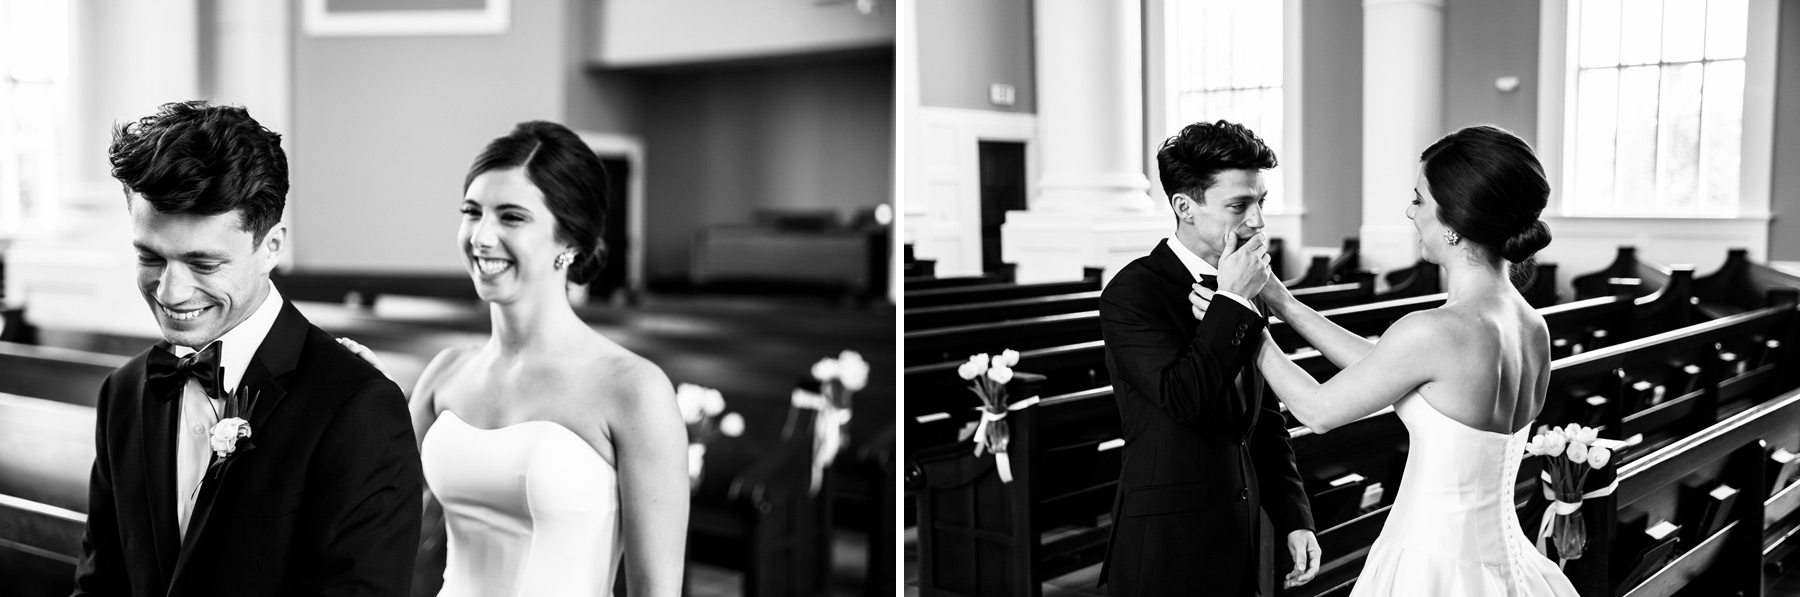 17_Brass on Baltimore Wedding_Kindling Wedding Photography.JPG